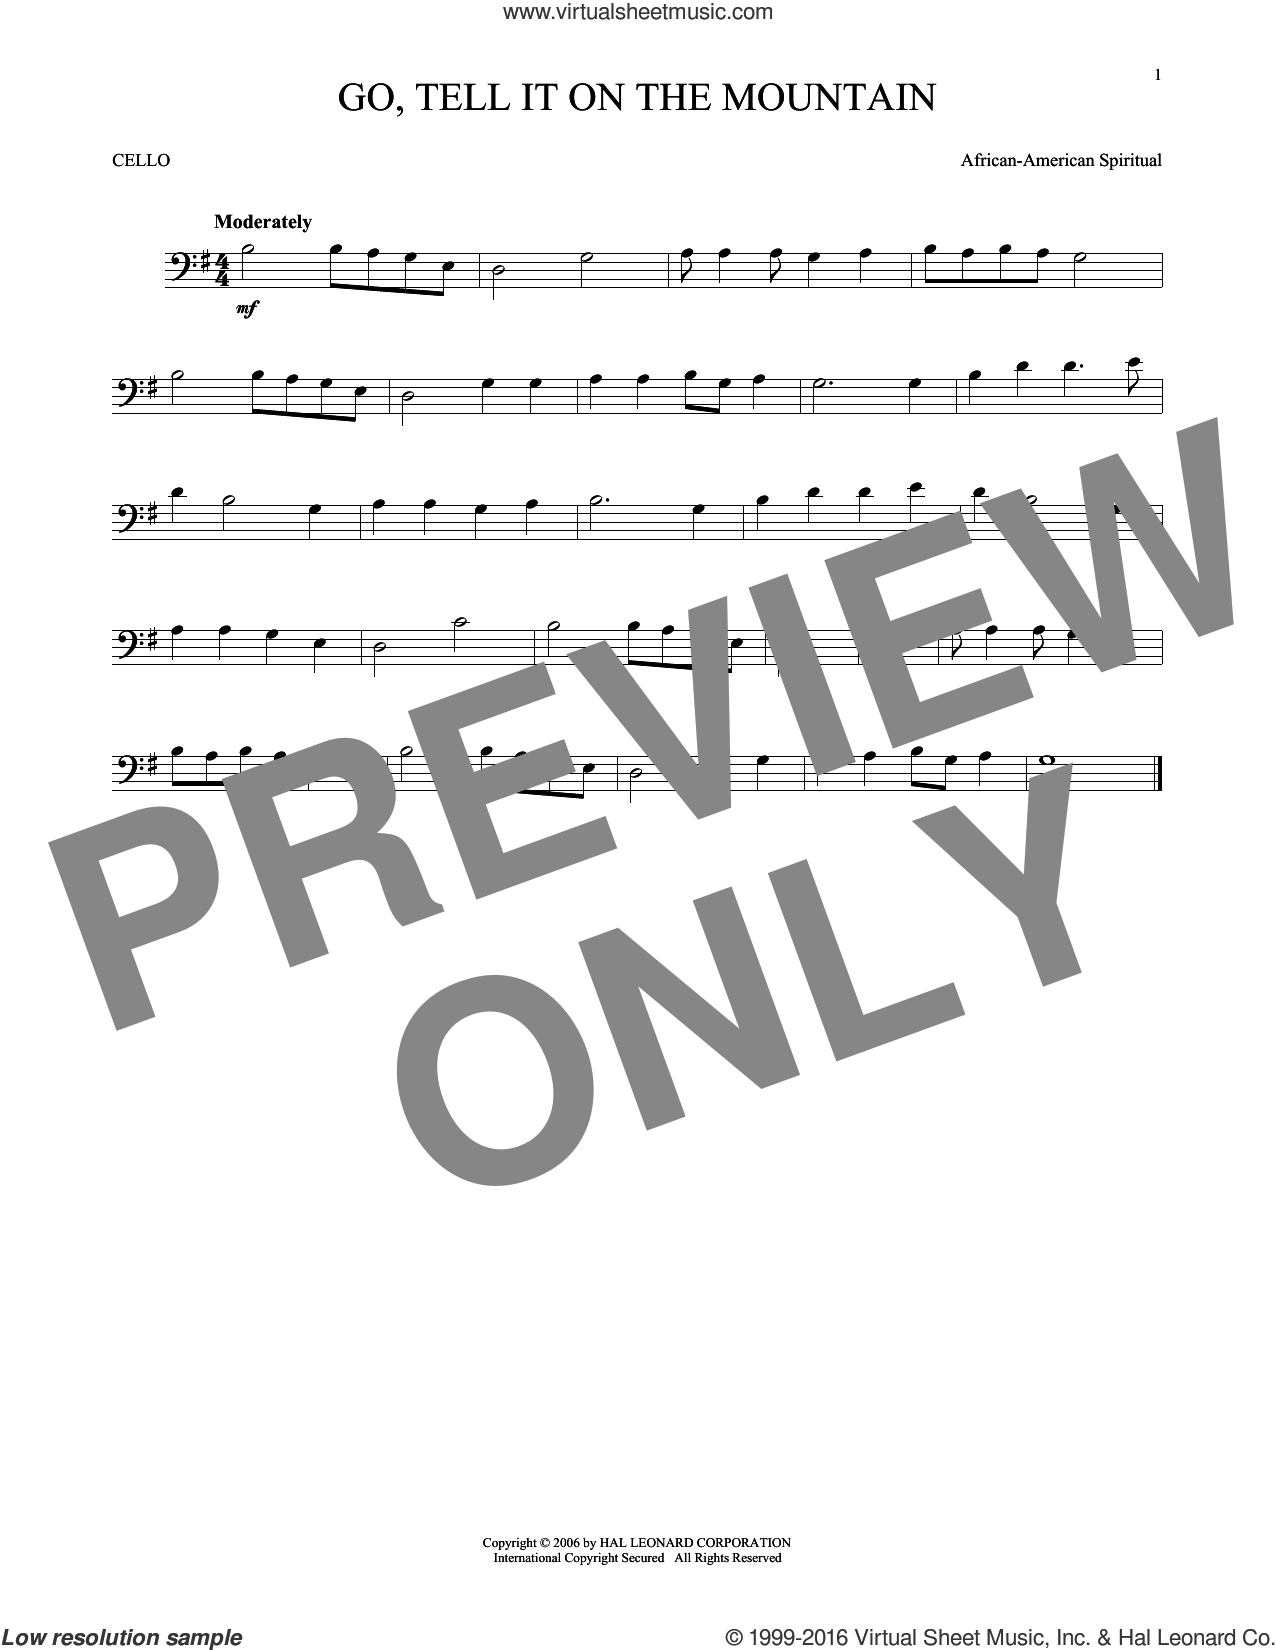 Go, Tell It On The Mountain sheet music for cello solo by John W. Work, Jr. and Miscellaneous, intermediate skill level